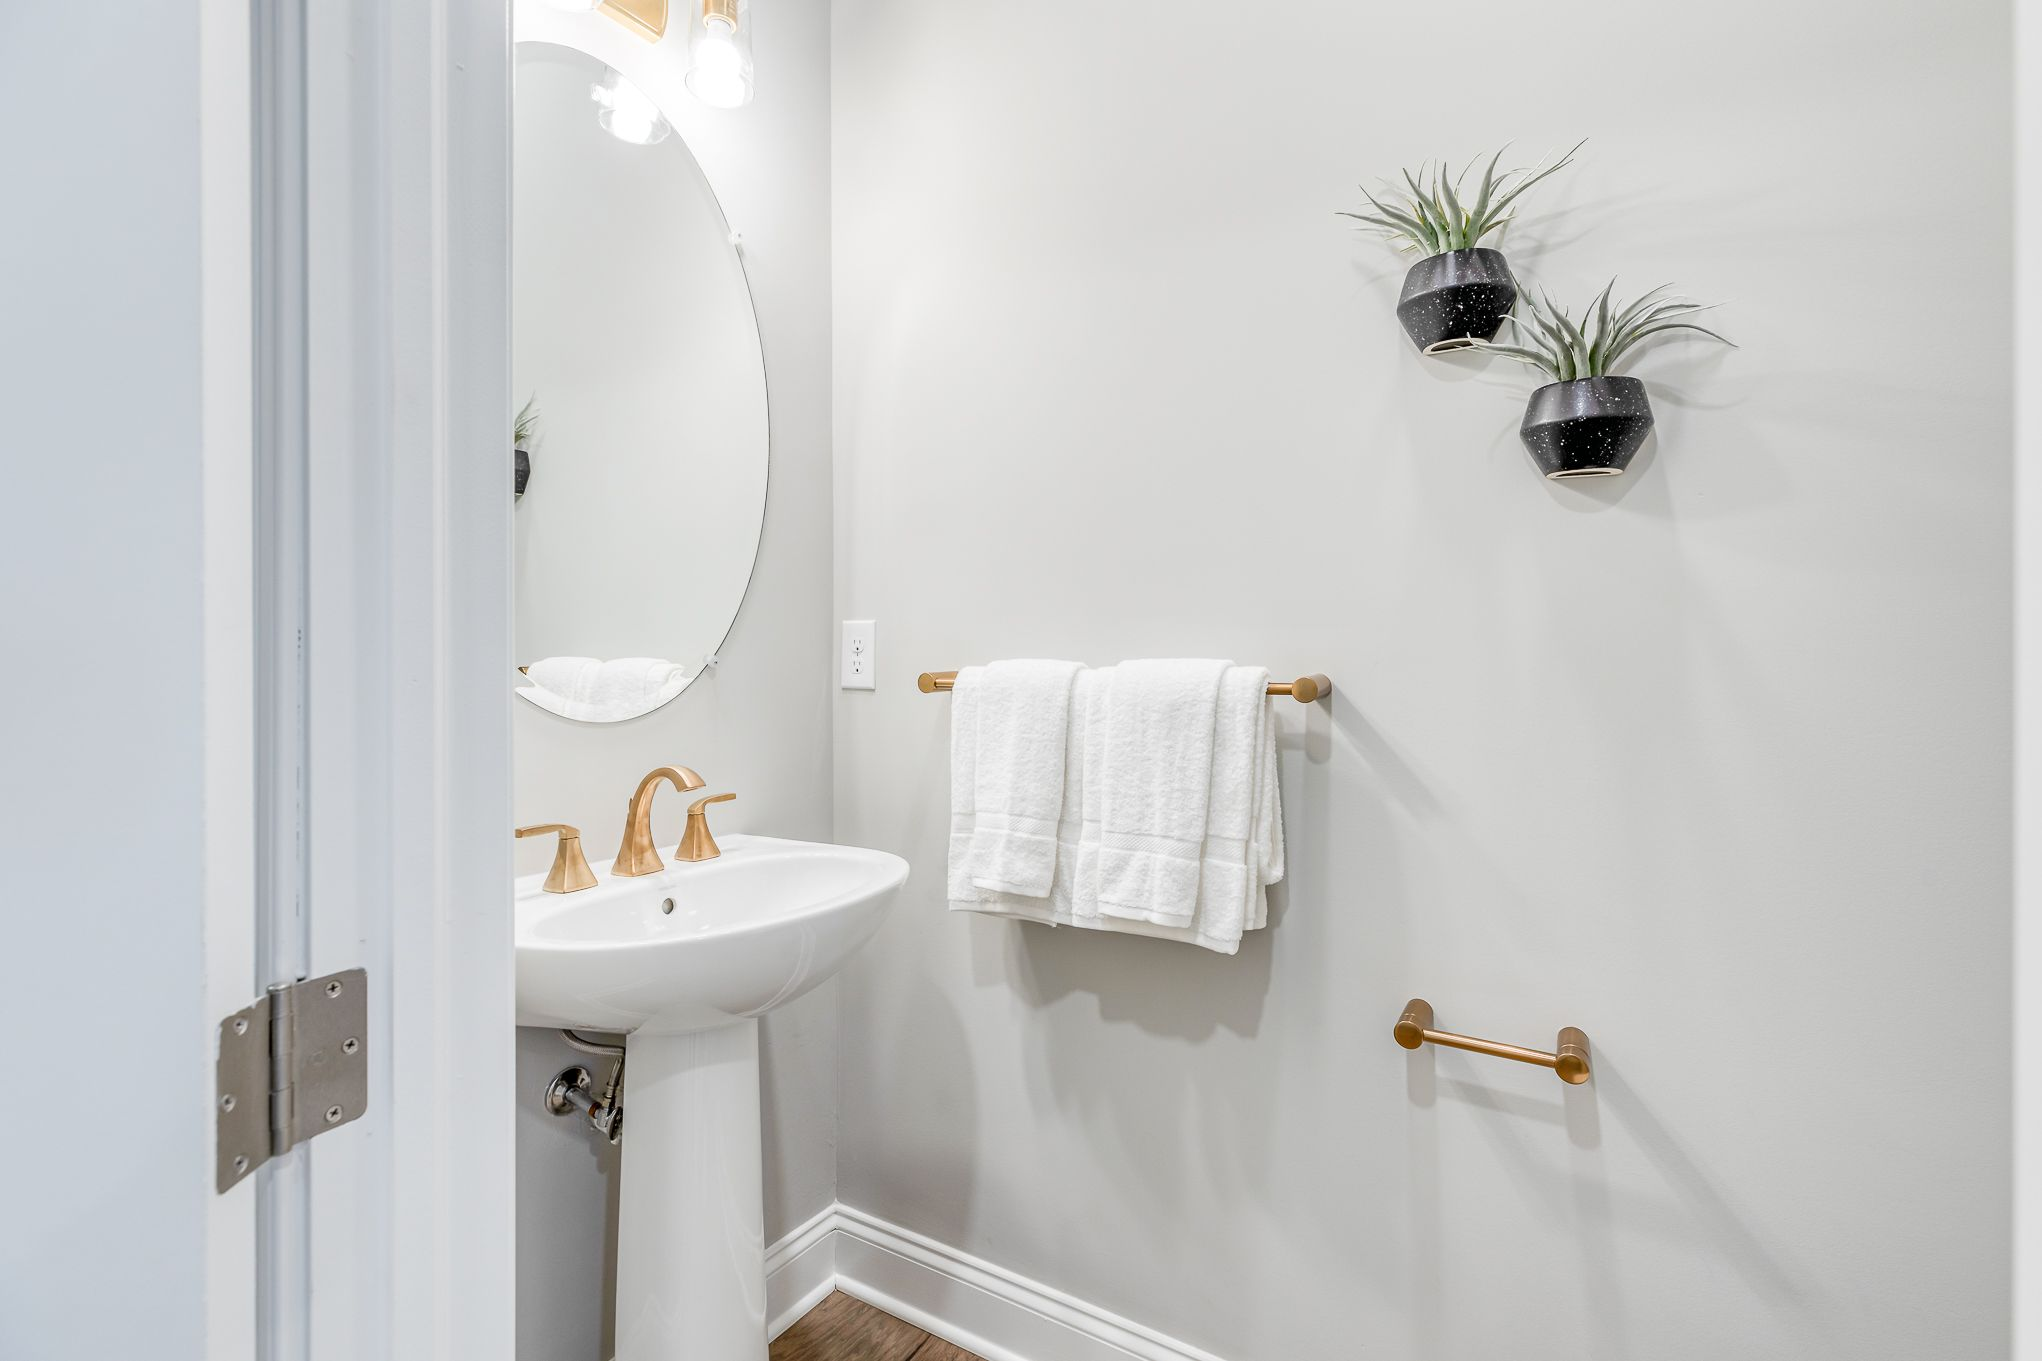 Bathroom featured in The Shannon By McKee Builders in Philadelphia, PA